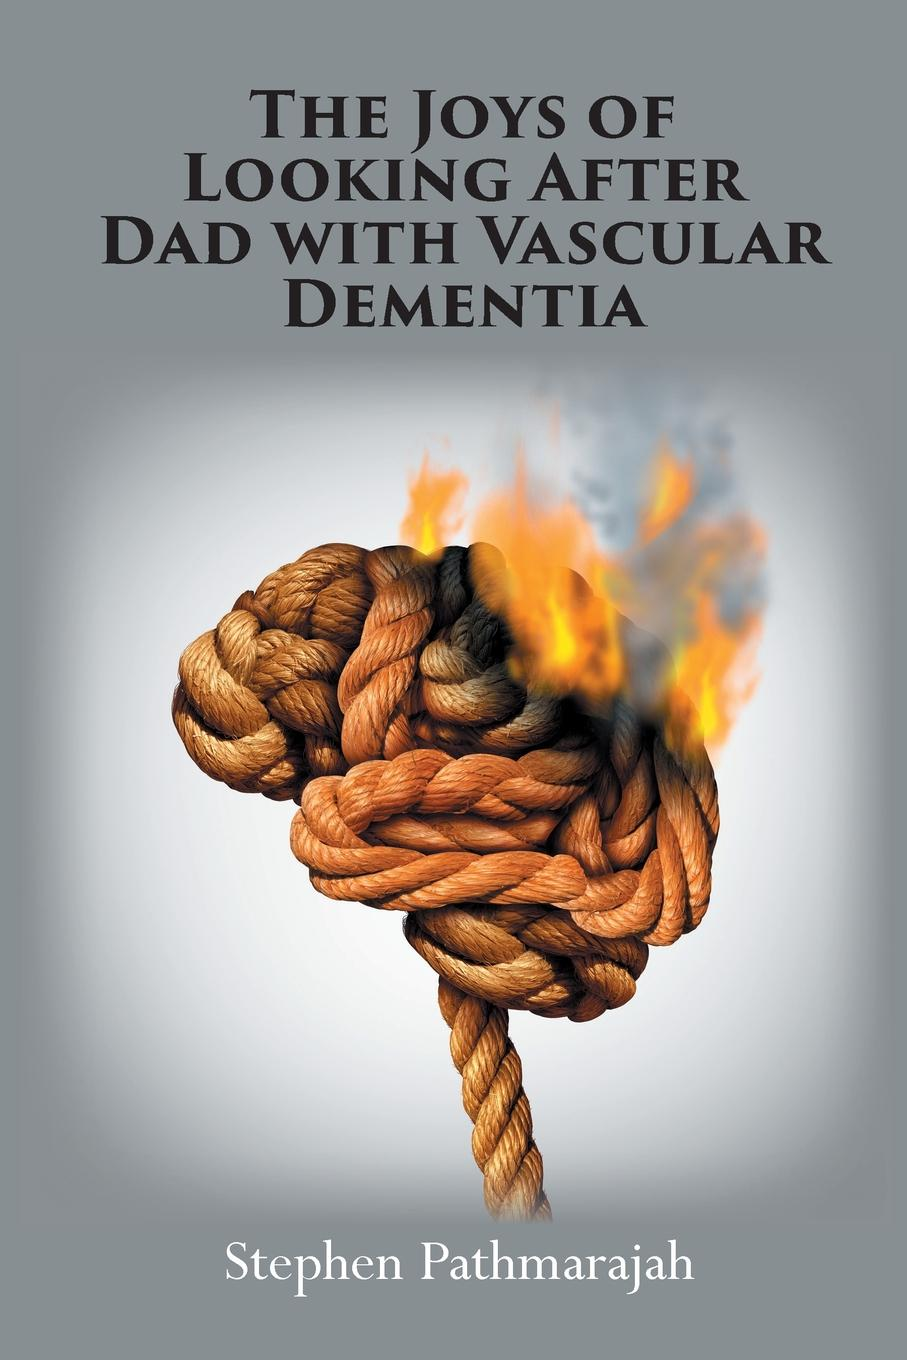 Stephen Pathmarajah The Joys of Looking After Dad with Vascular Dementia